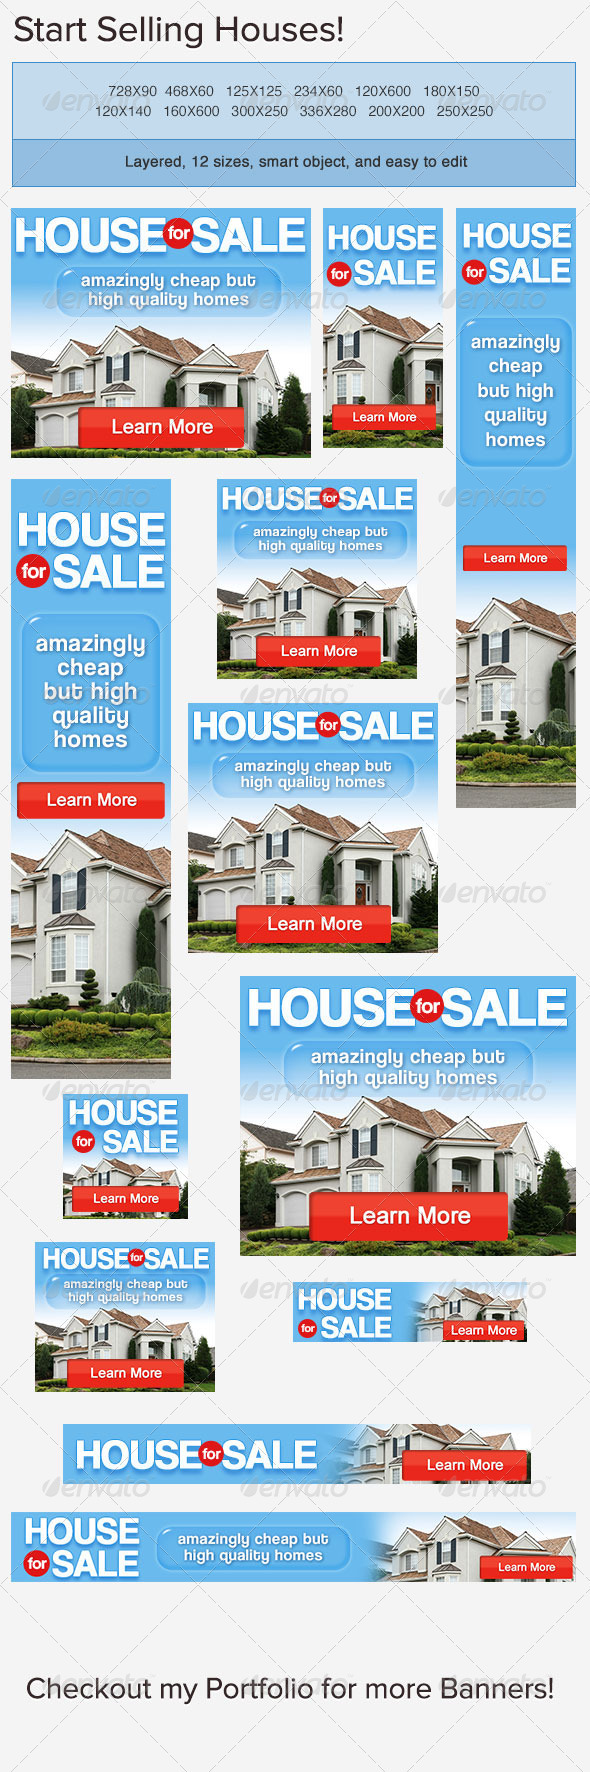 house for banner ad psd template banner households house for banner ad template psd buy and